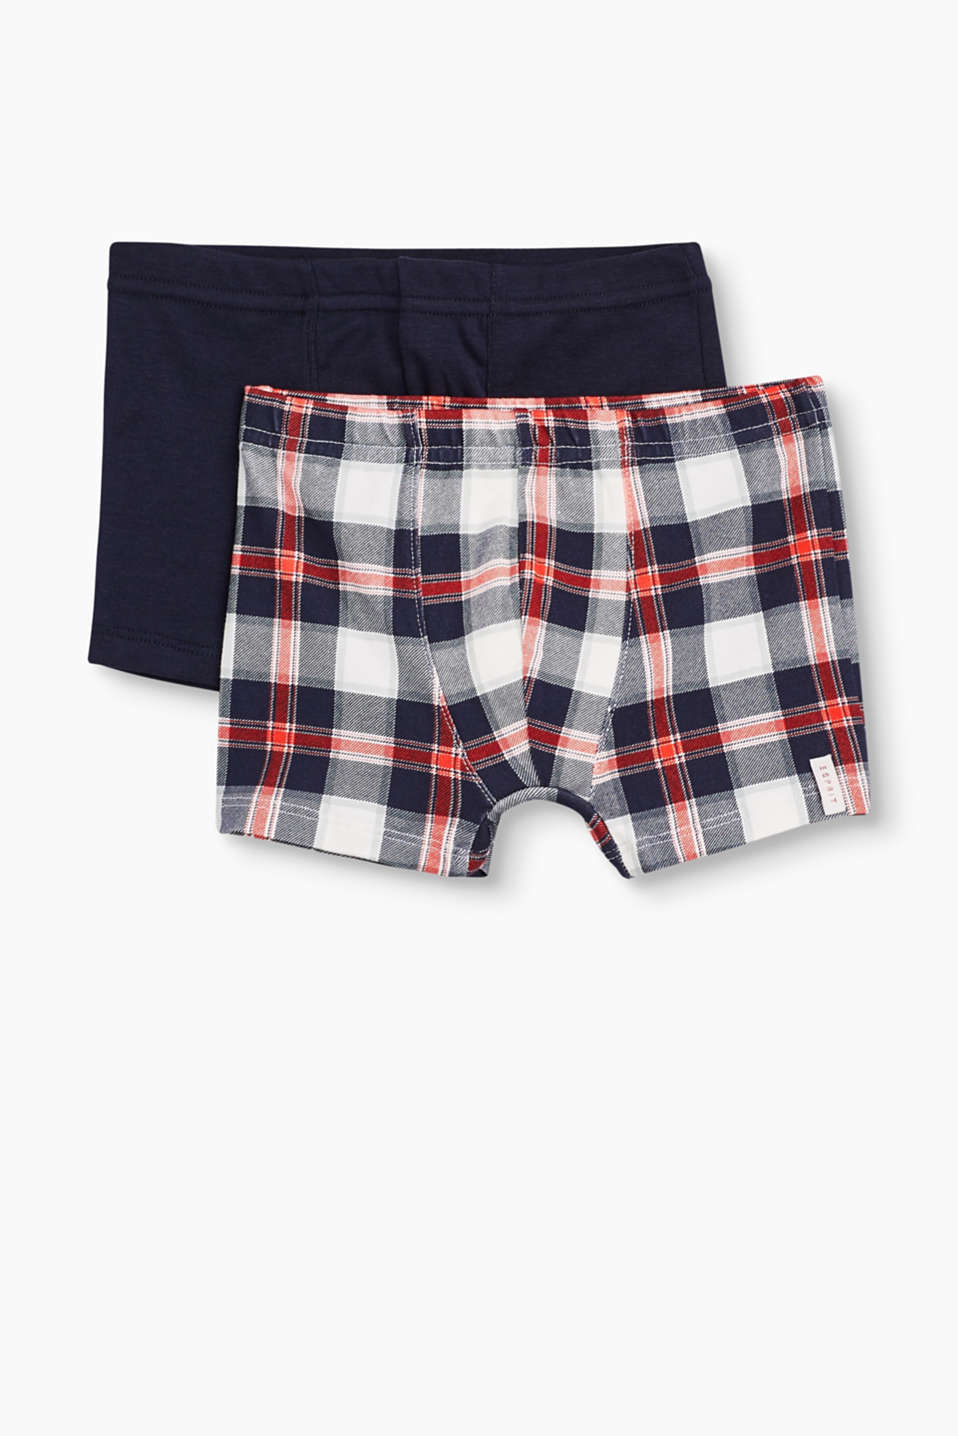 Super comfortable and sporty: cotton boxer shorts in a practical double pack